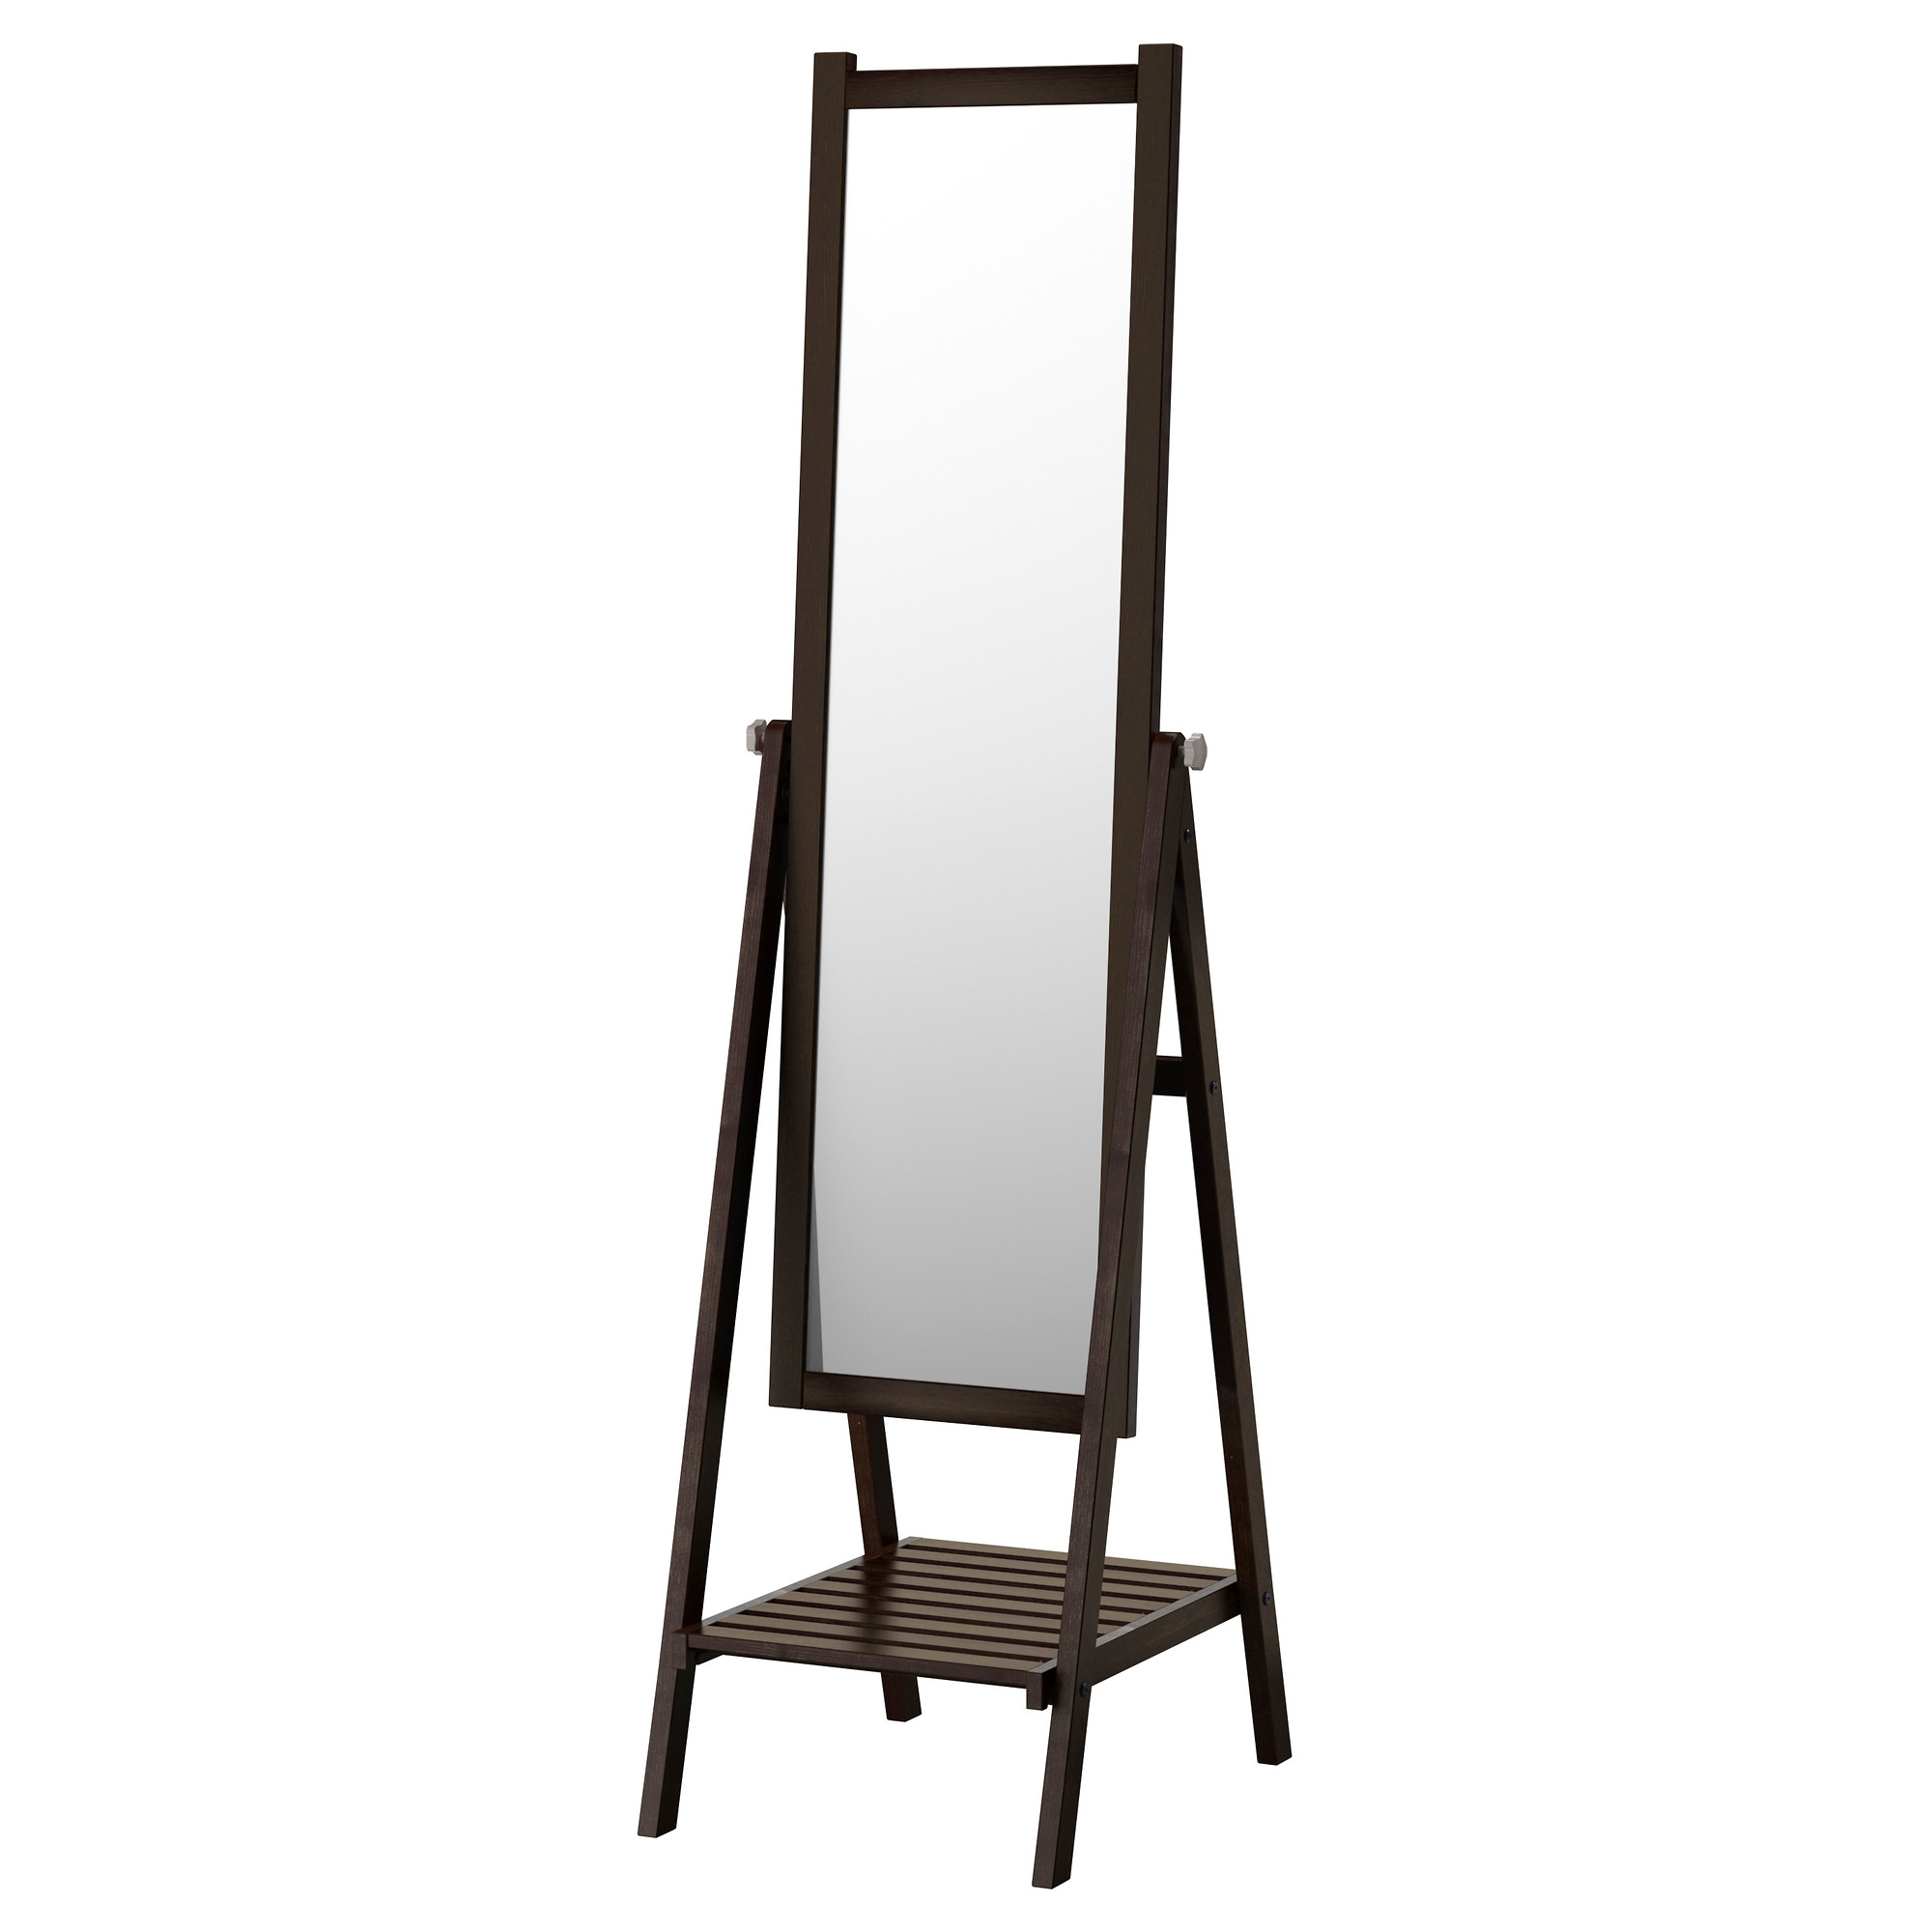 Mirrors Ikea Regarding Full Length Stand Alone Mirrors (Image 14 of 15)